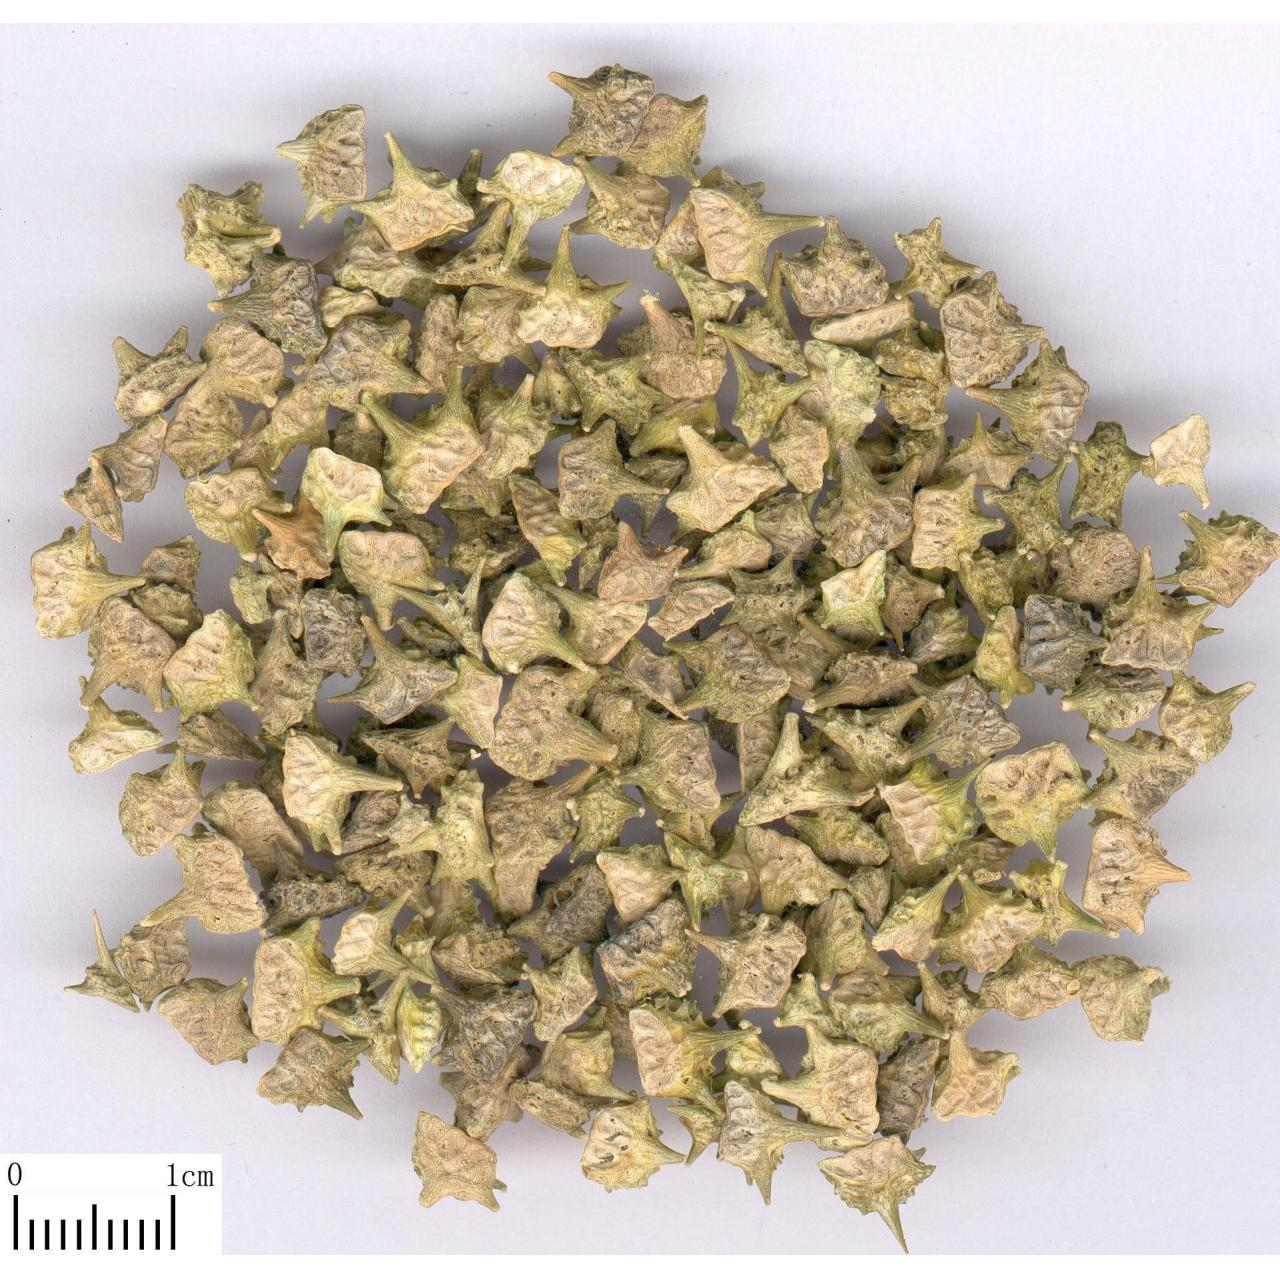 Broom Cypress Extract Extract by Rate